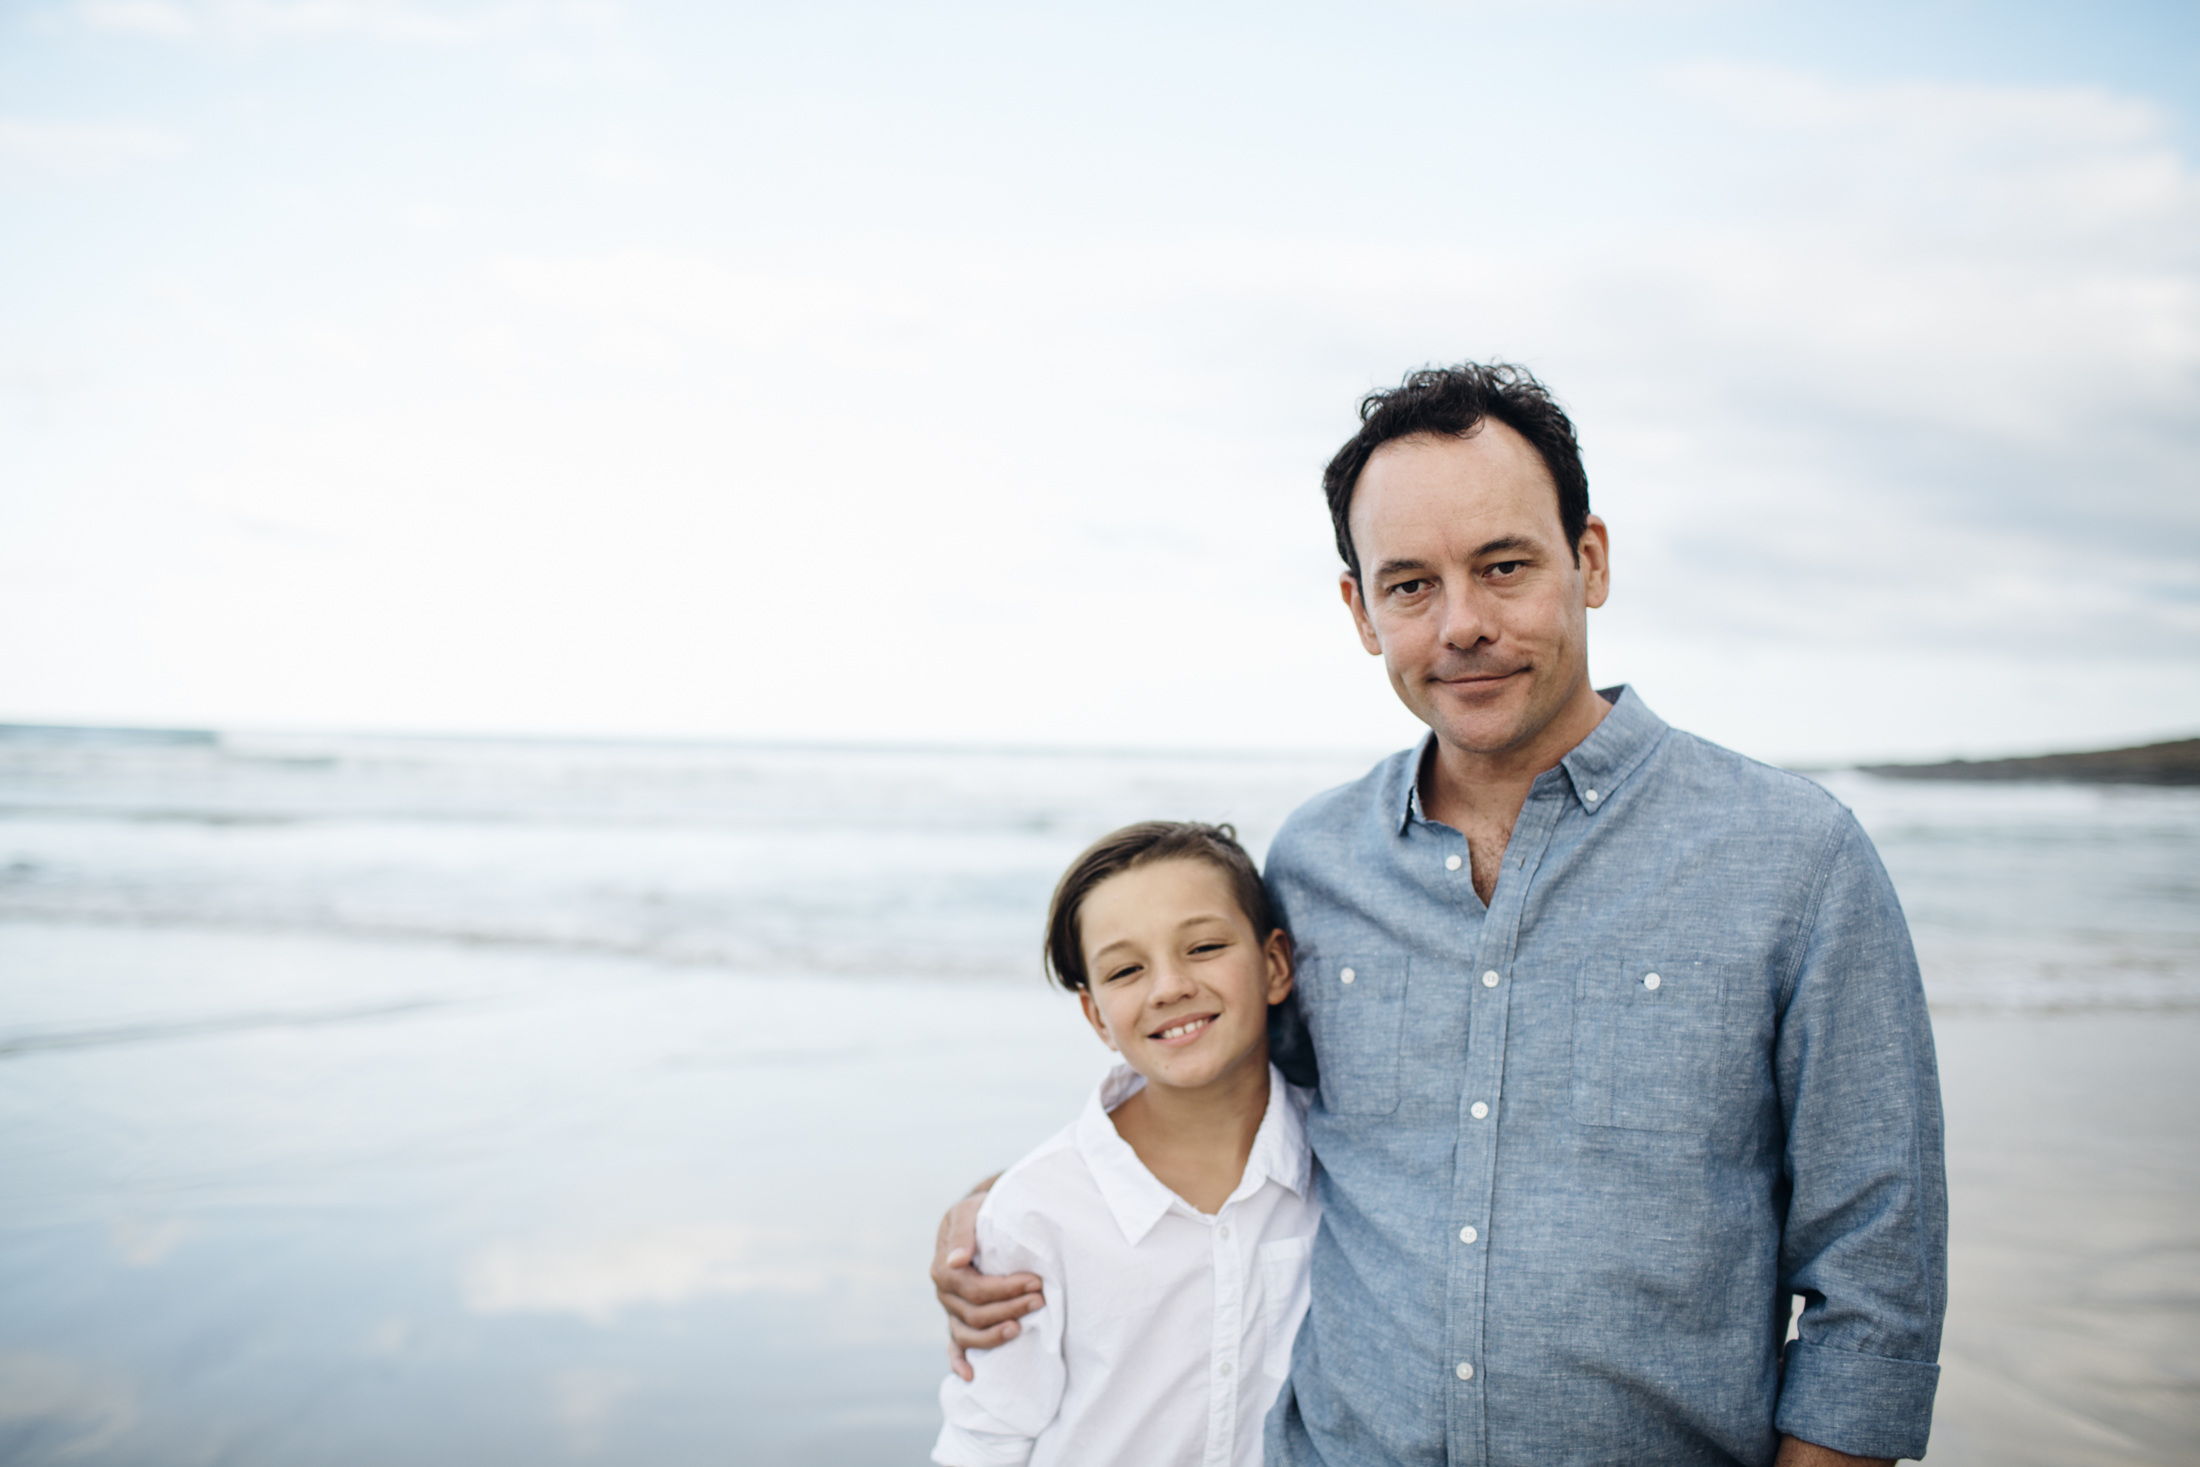 sheridan_nilsson_northern_beaches_lifestyle_family_photographer.052.jpg